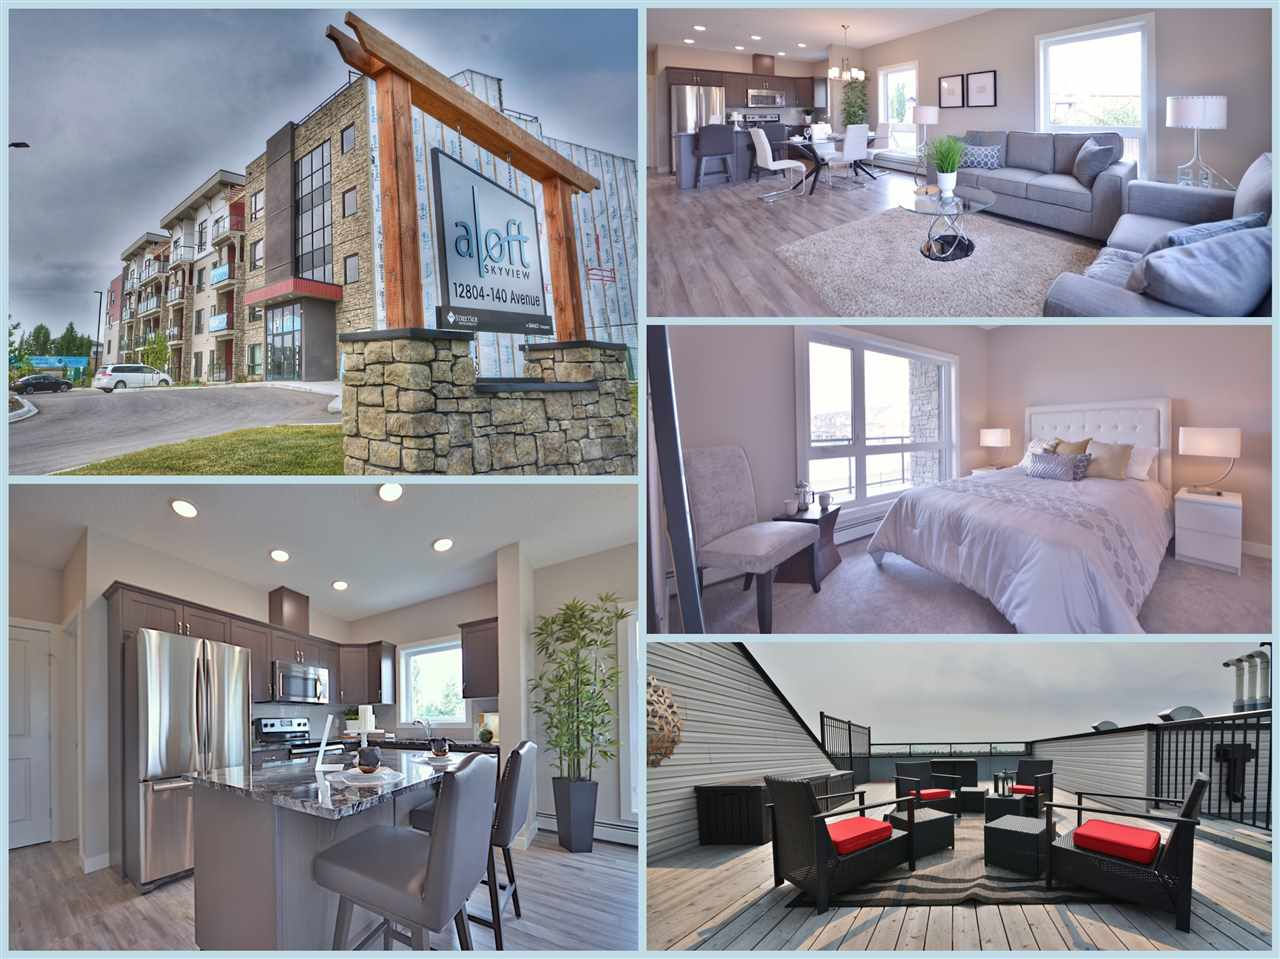 Main Photo: 202 12804 140 Avenue in Edmonton: Zone 27 Condo for sale : MLS® # E4079493